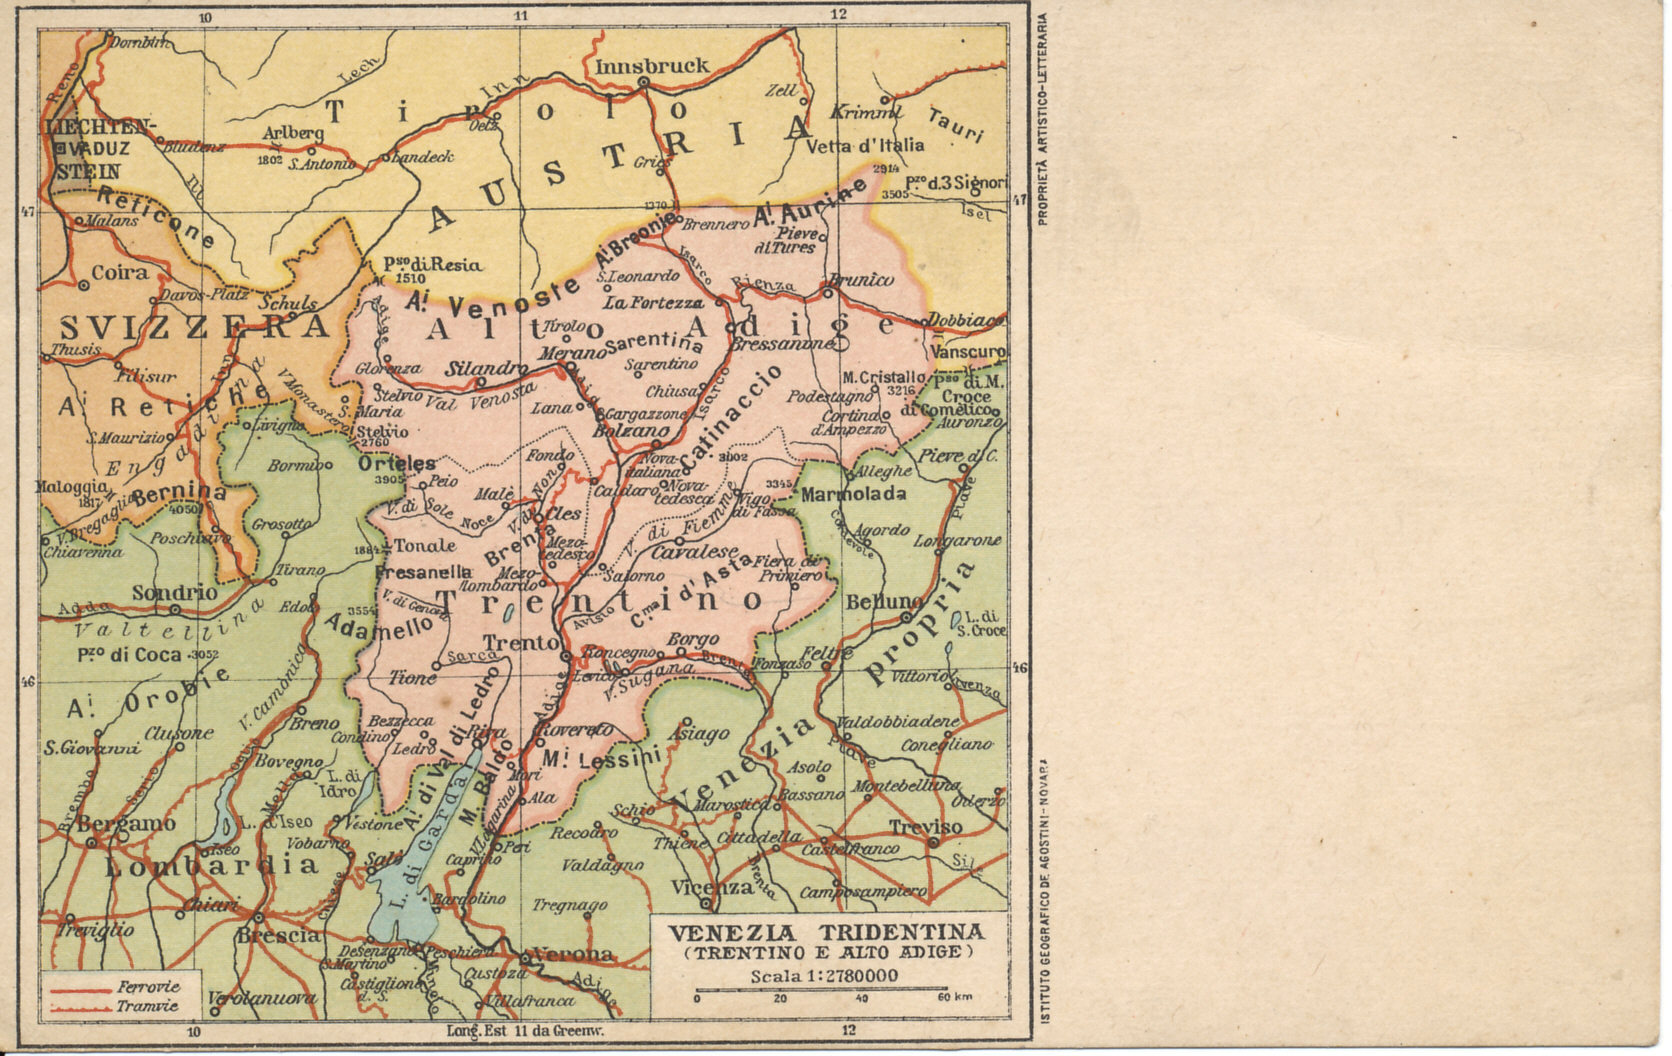 Postcard map of Trentino and Alto Adige (Venezia Tridentina) regions in Austria-Hungary with substantial Italian-speaking populations. Many Italians considered them part of Italia Irredenta, unredeemed Italy, and strove to obtain them by diplomacy or war, and incorporate them into Italy.